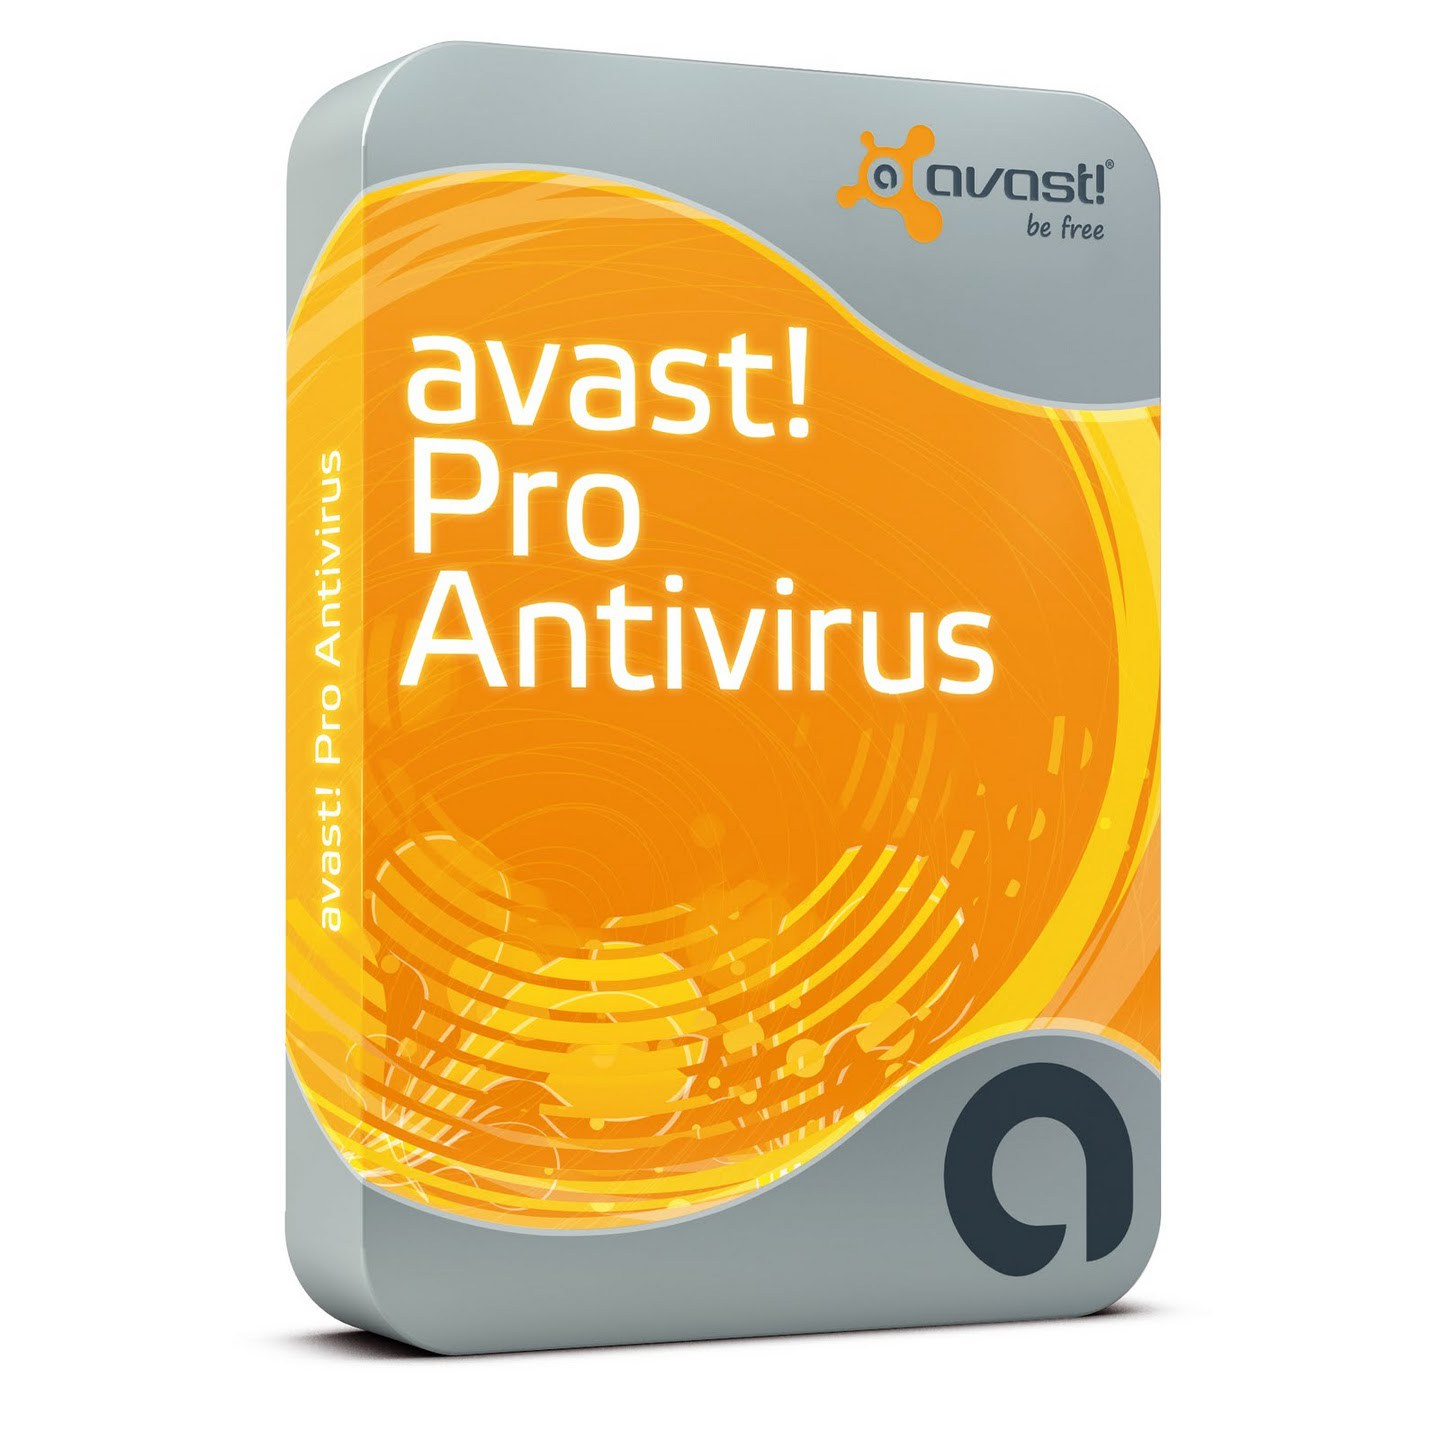 Perfectly remove avast free antivirus 2015 how to do it - Perfectly Remove Avast Free Antivirus 2015 How To Do It 55